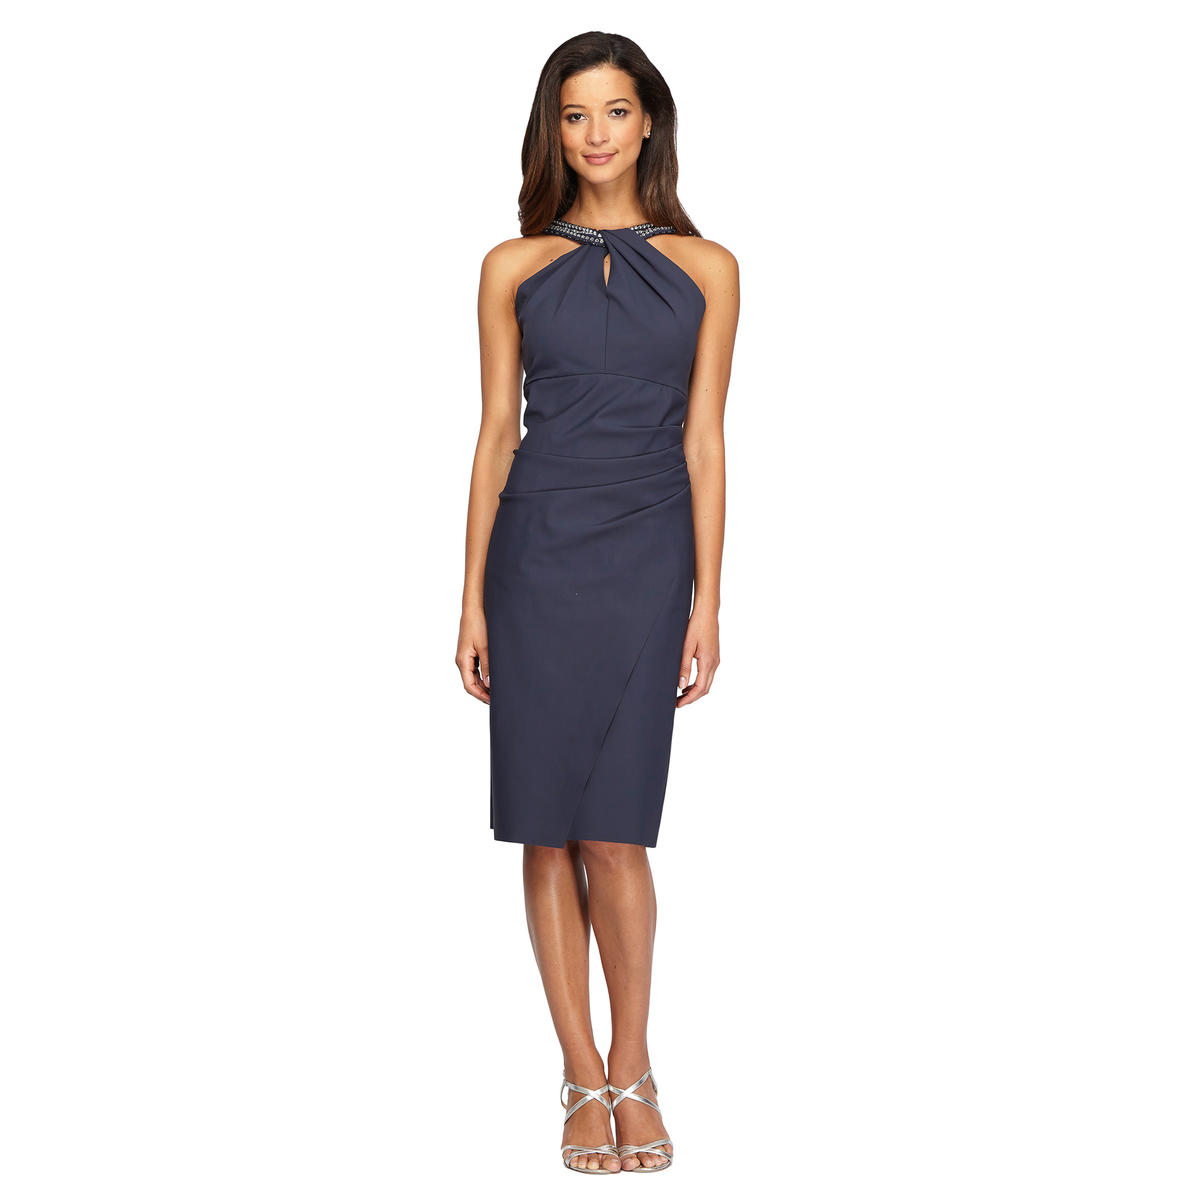 ALEX APPAREL GROUP INC - Beaded Halter Neck Cocktail Dress